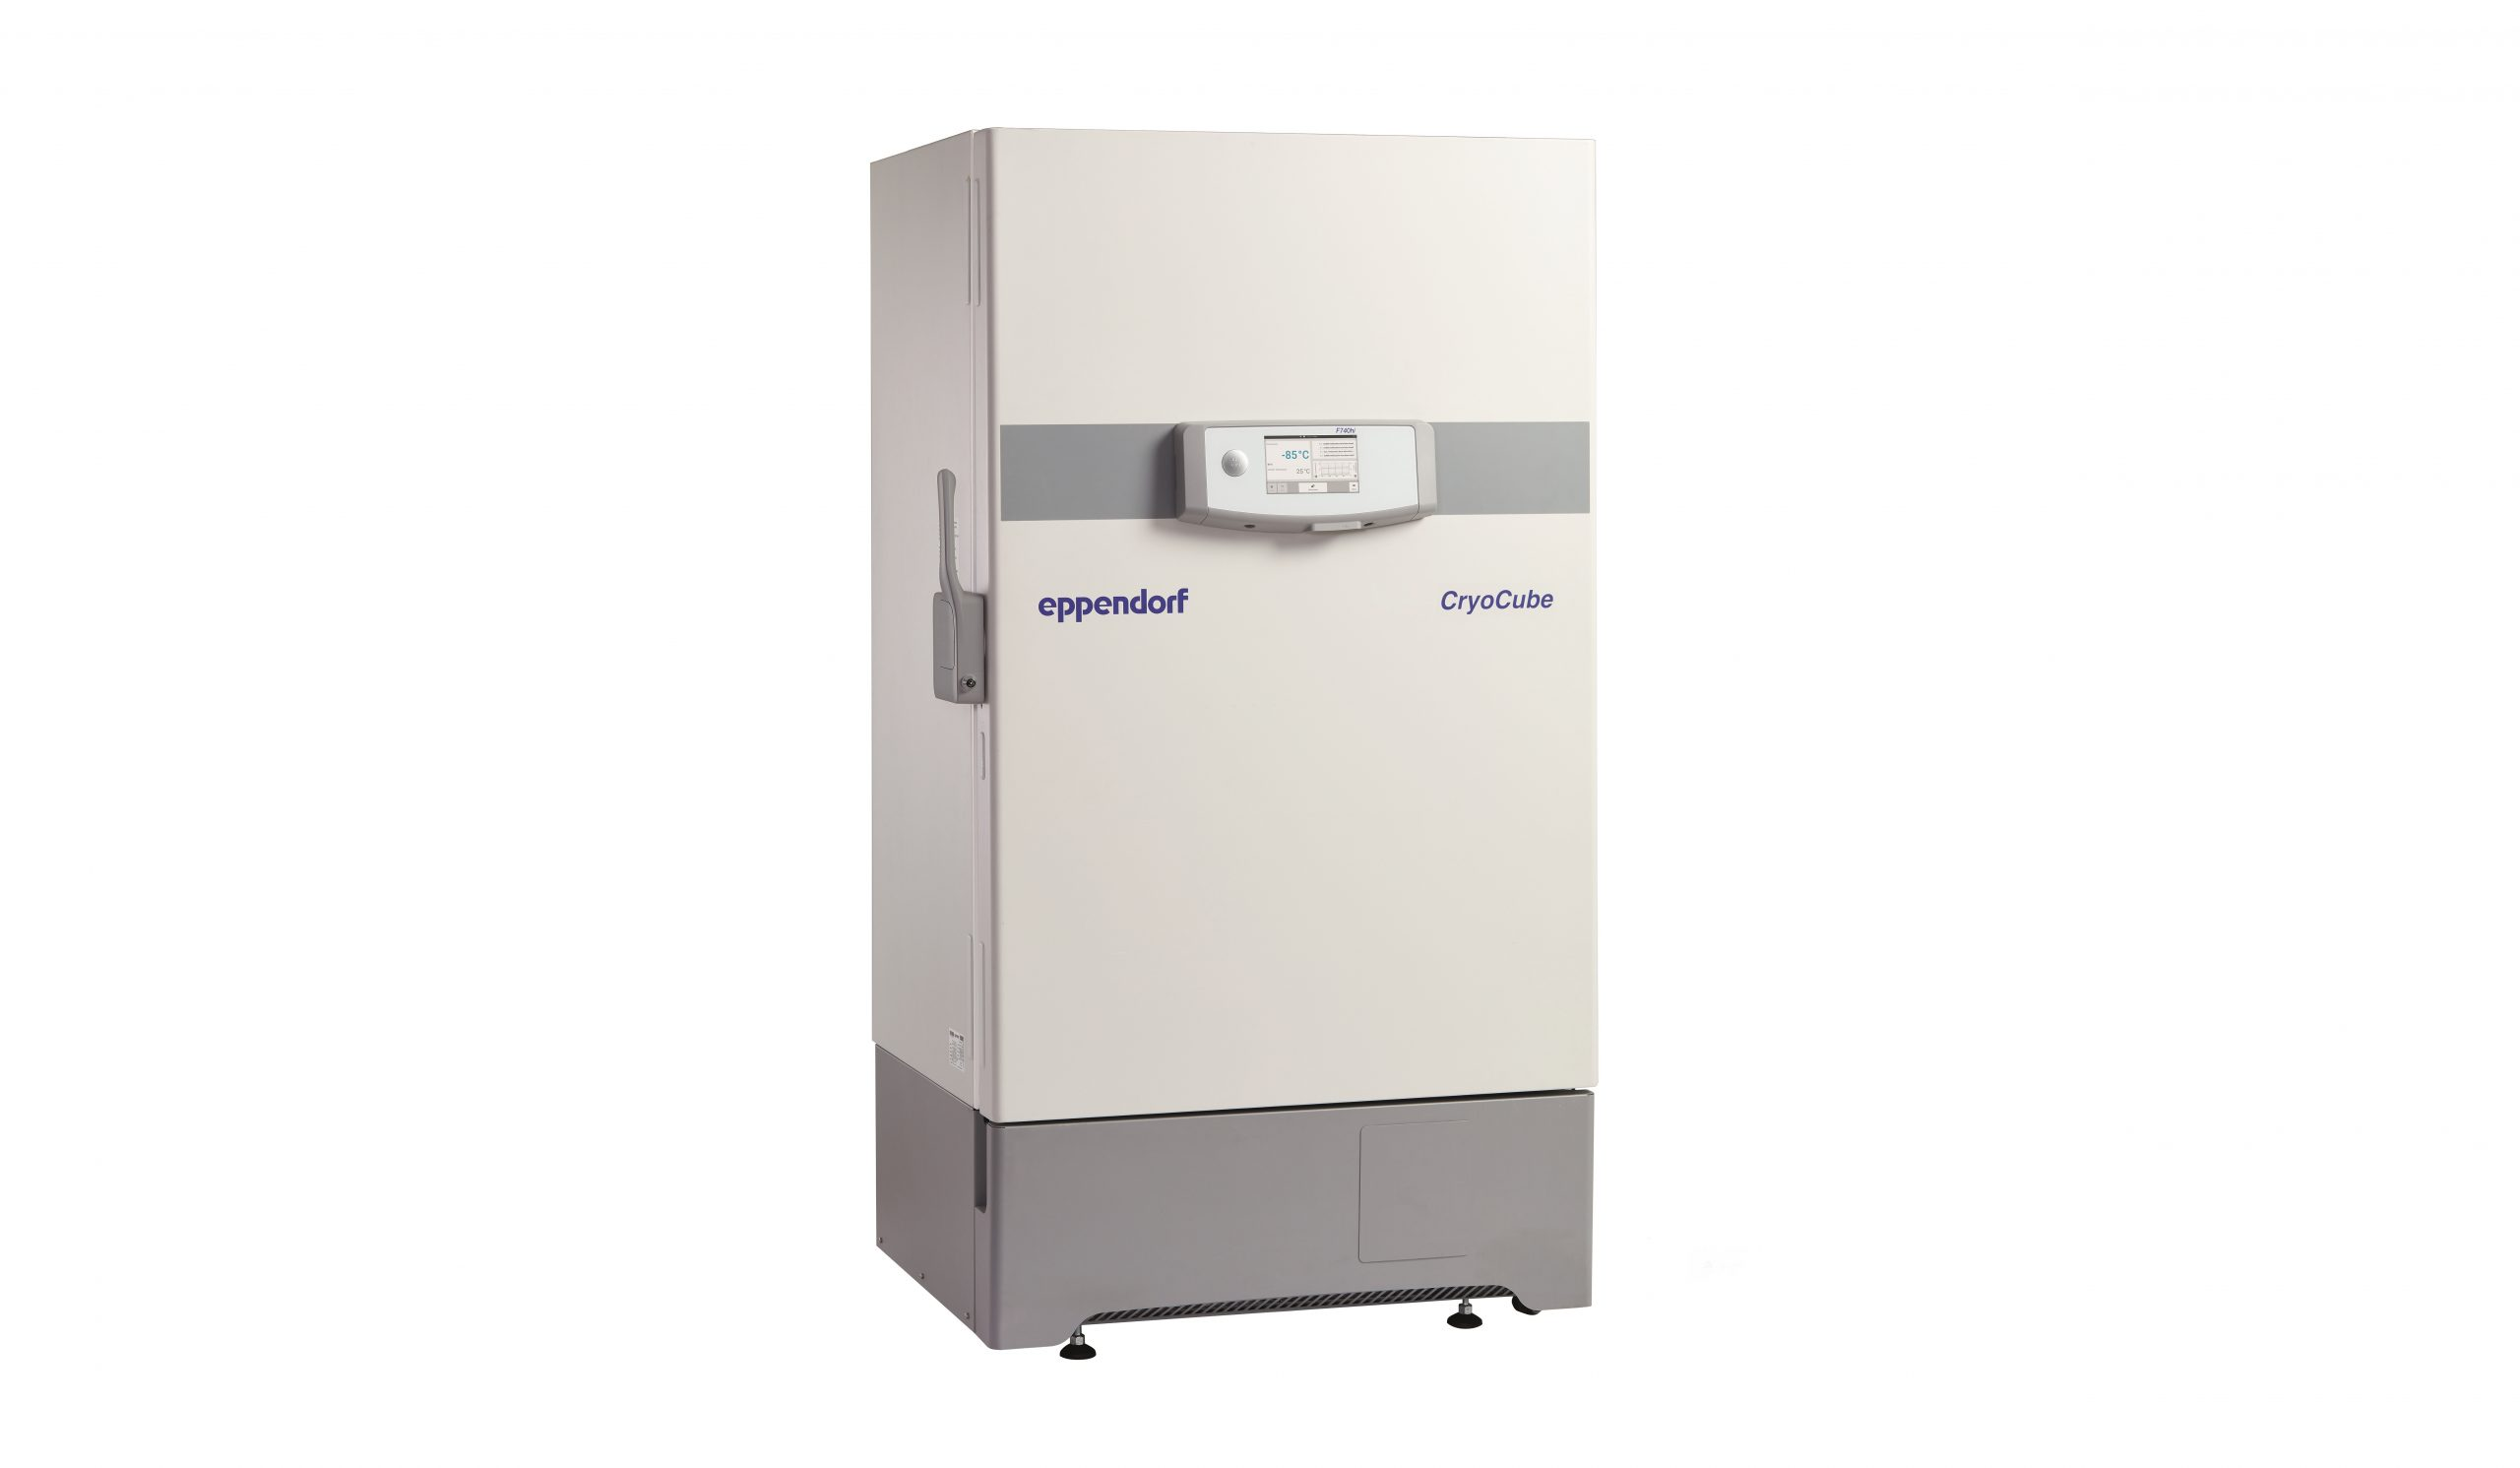 Certification for Eppendorf ULT freezers